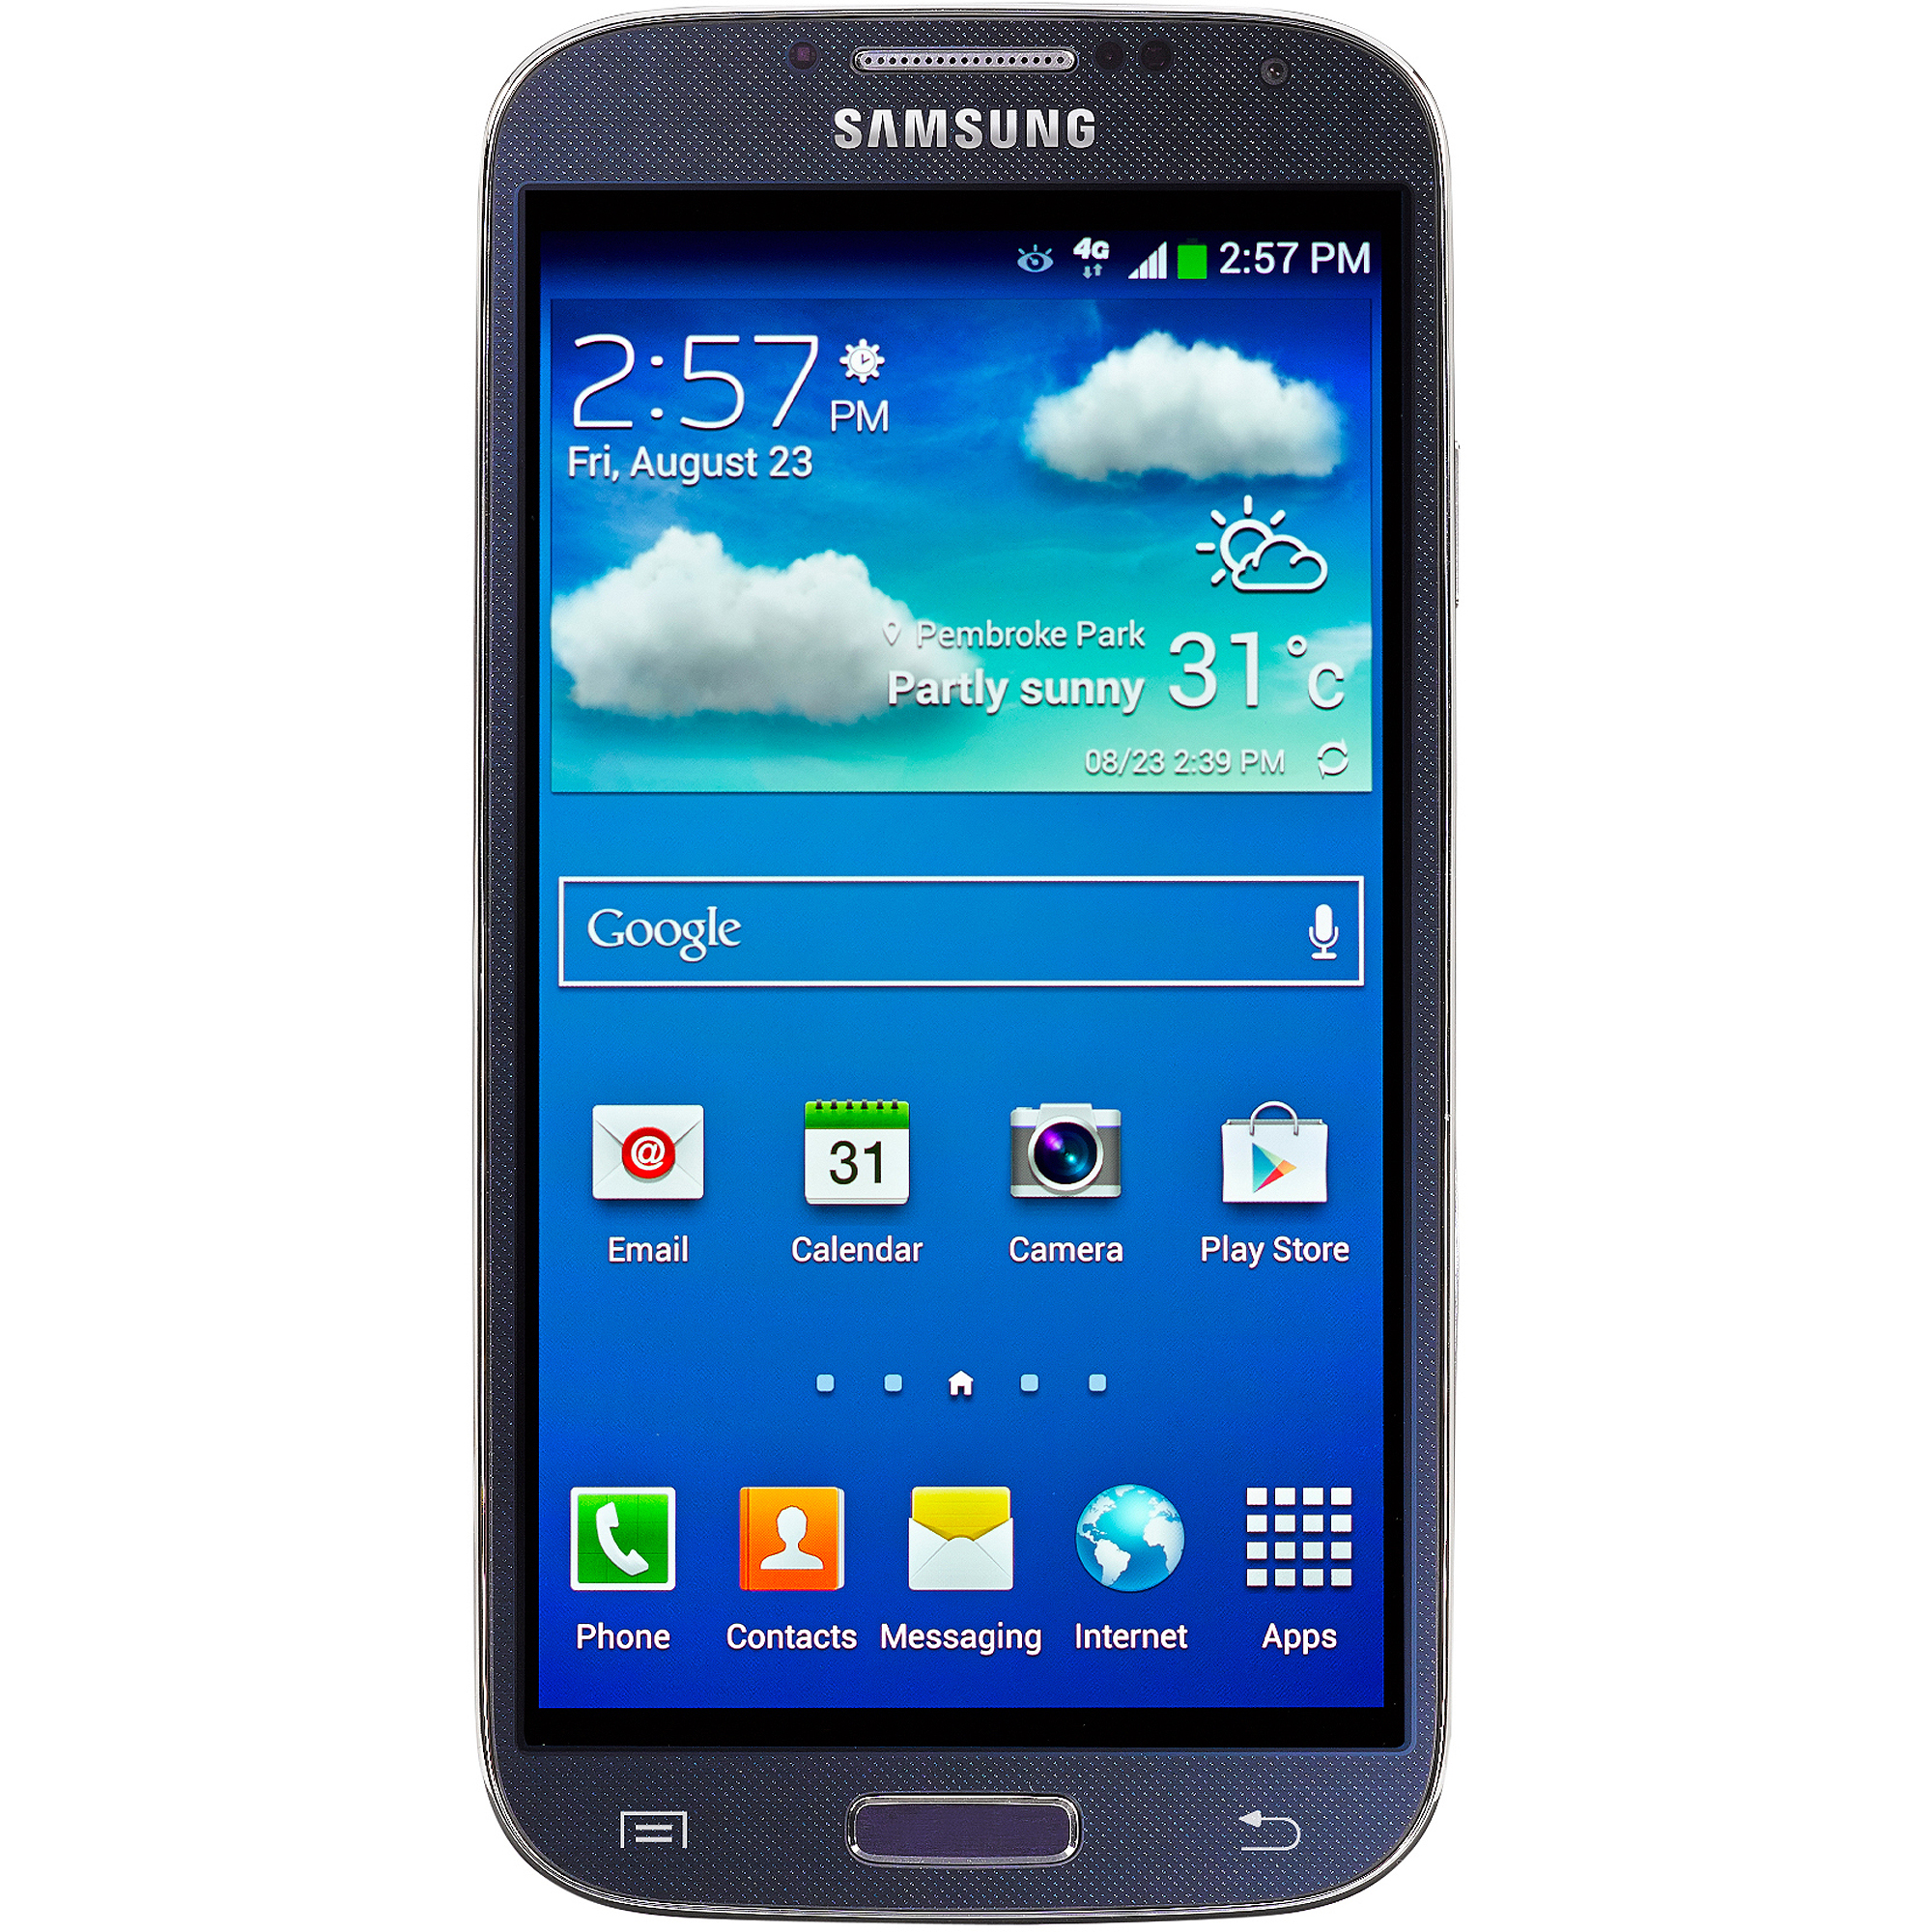 Samsung Galaxy Backgrounds on Wallpapers Vista